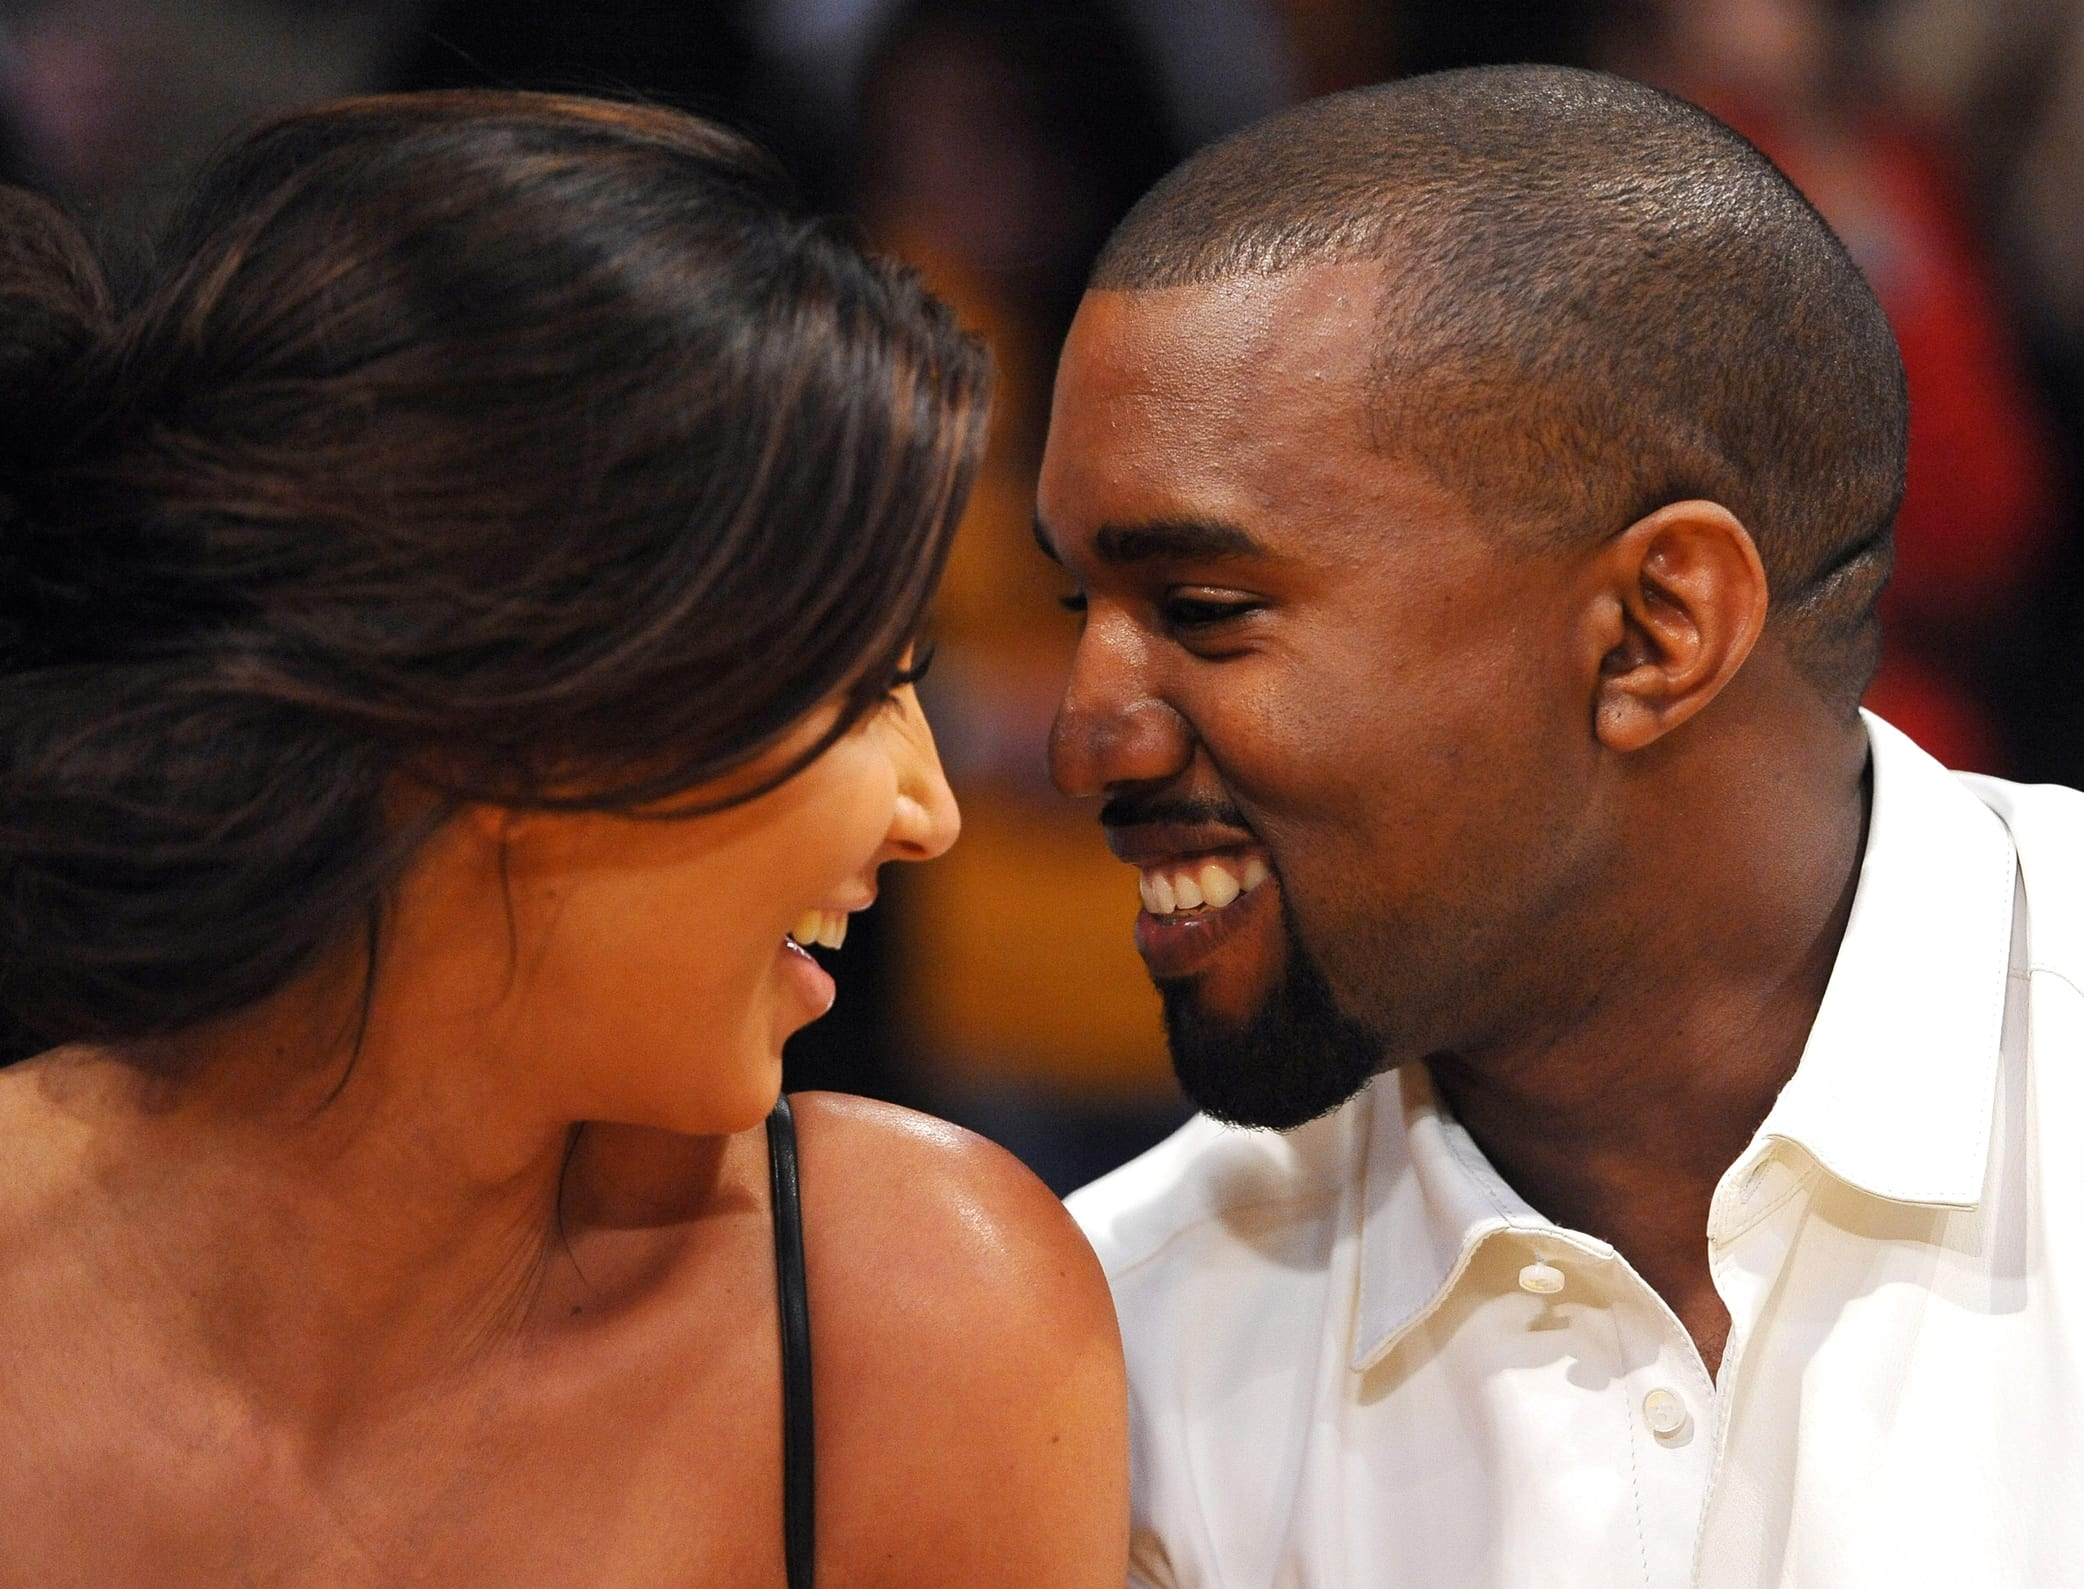 Kim Kardashian and Kanye West got engaged in 2013 and married in May of 2014